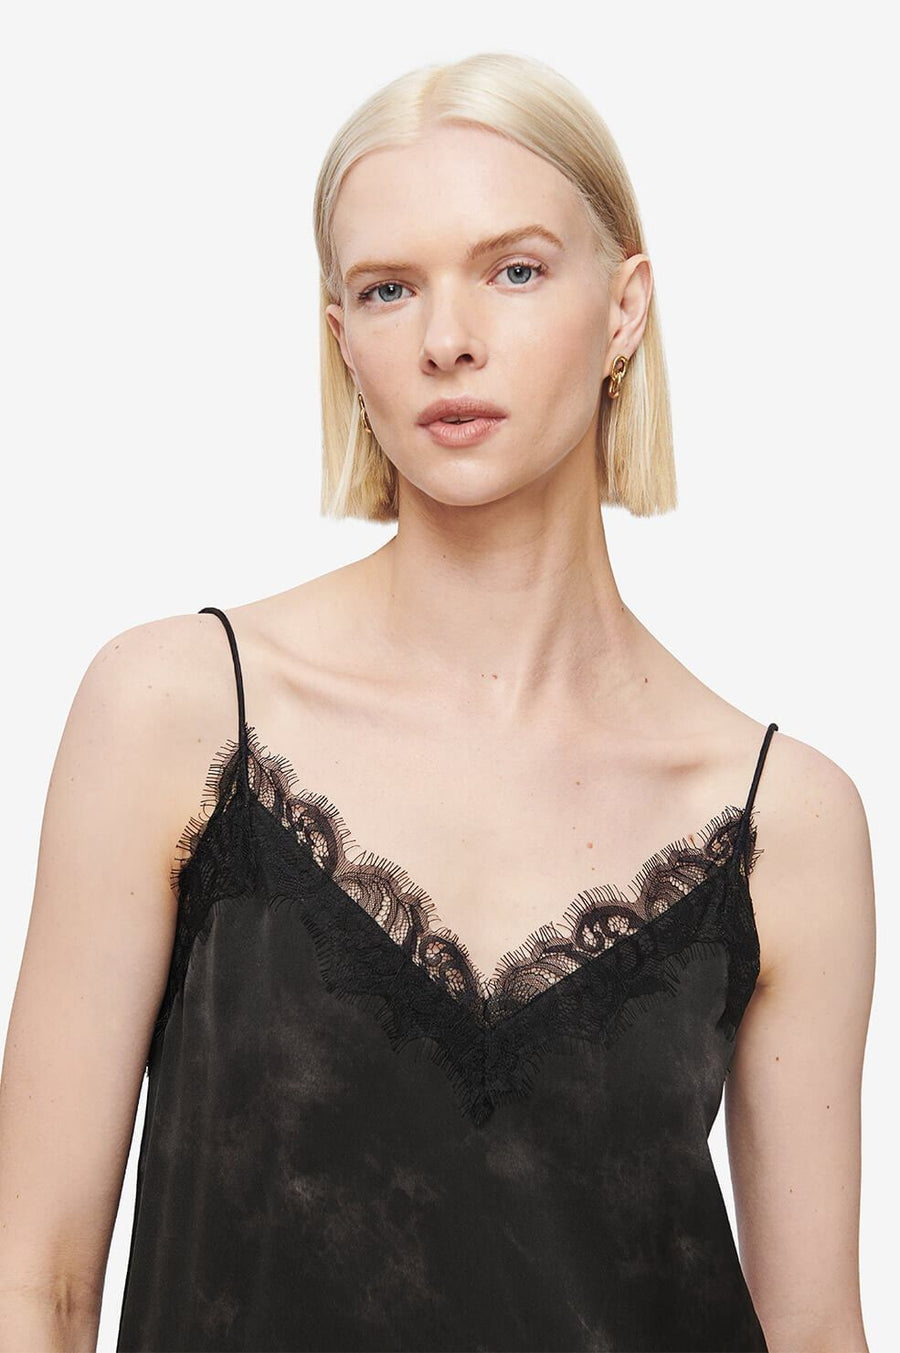 Anine Bing Belle Silk Camisole in Black Tie Dye from The New Trend